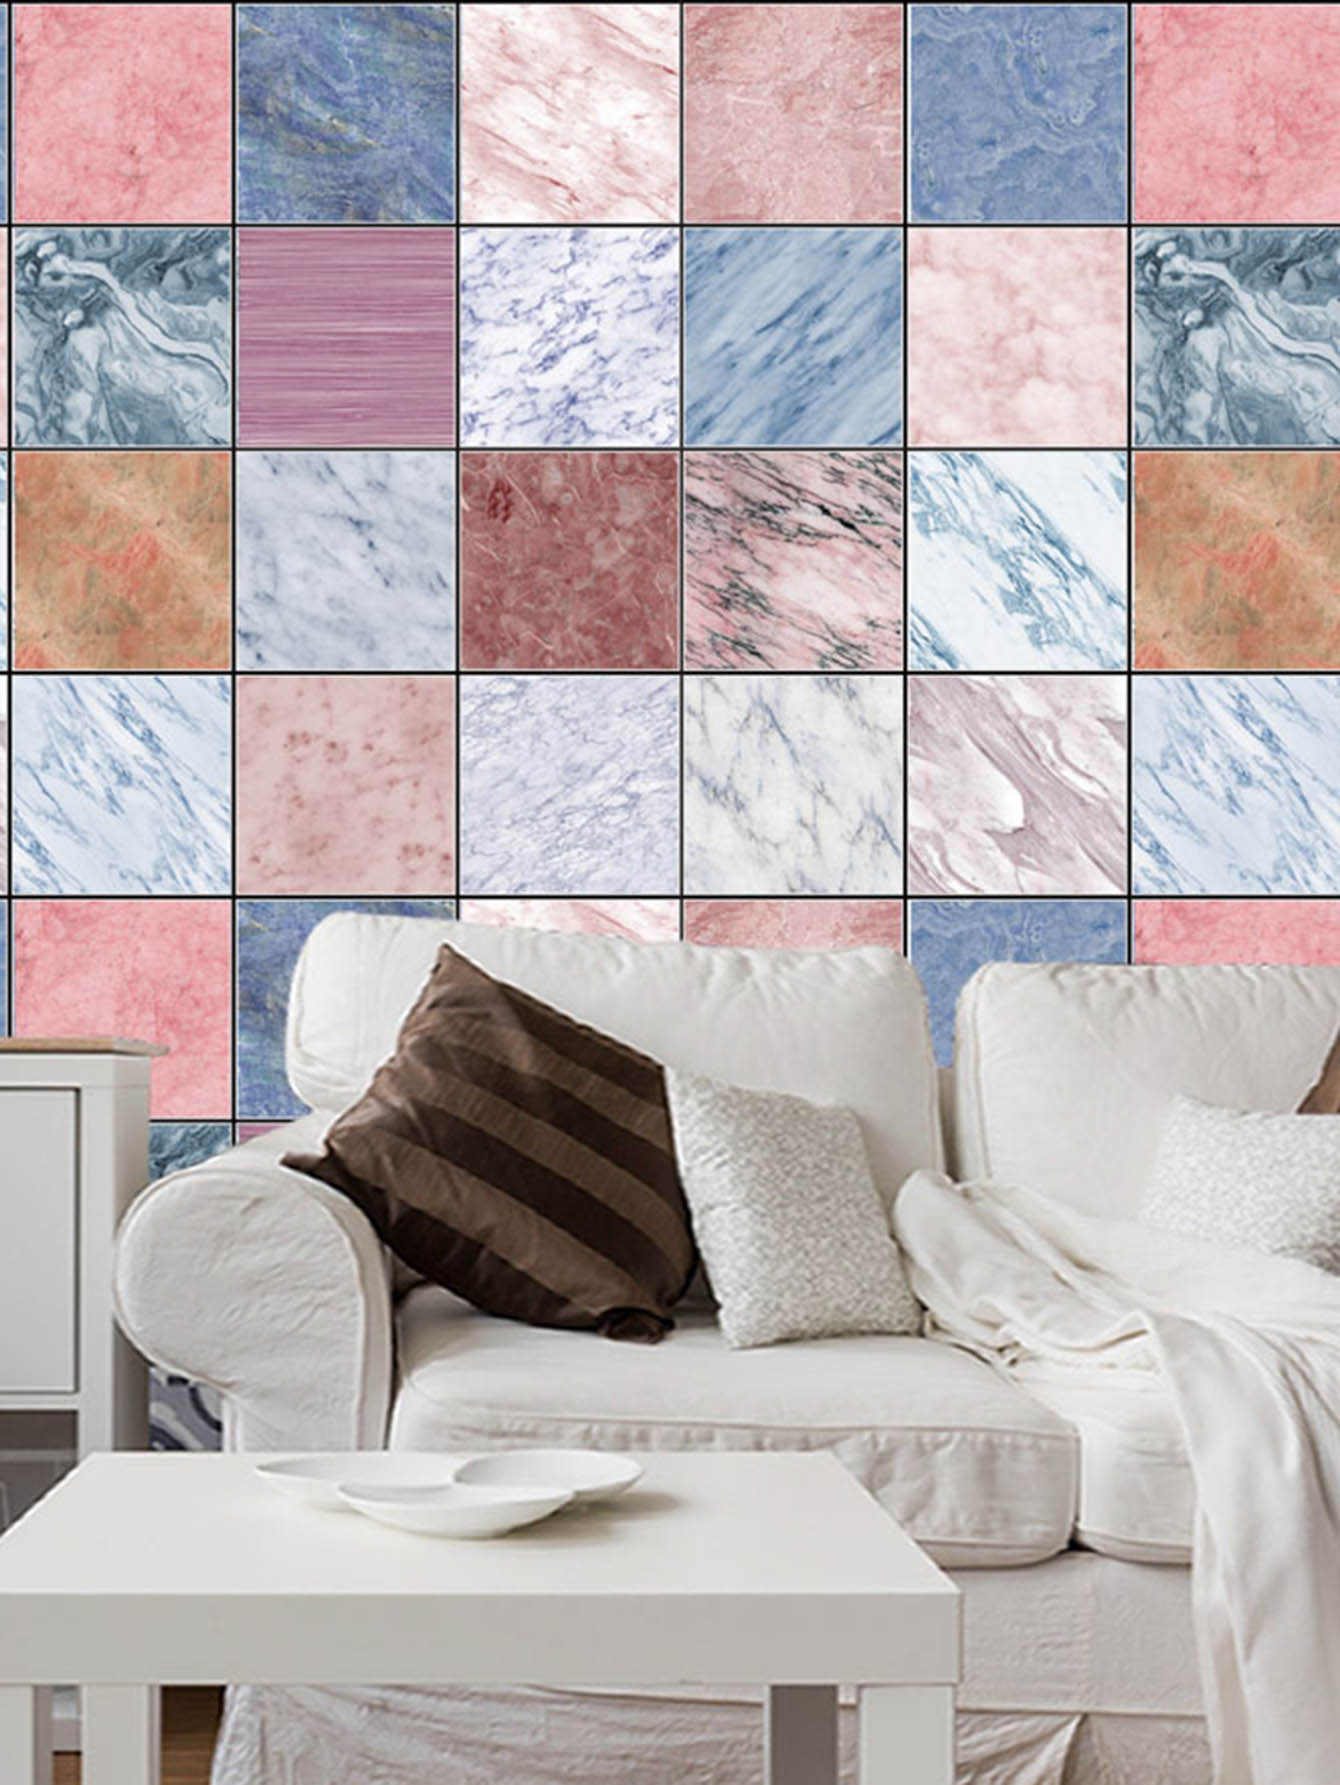 Random Marble Pattern Ceramic Tile Decal 1pc random stone spliced ceramic tile sticker 1pc